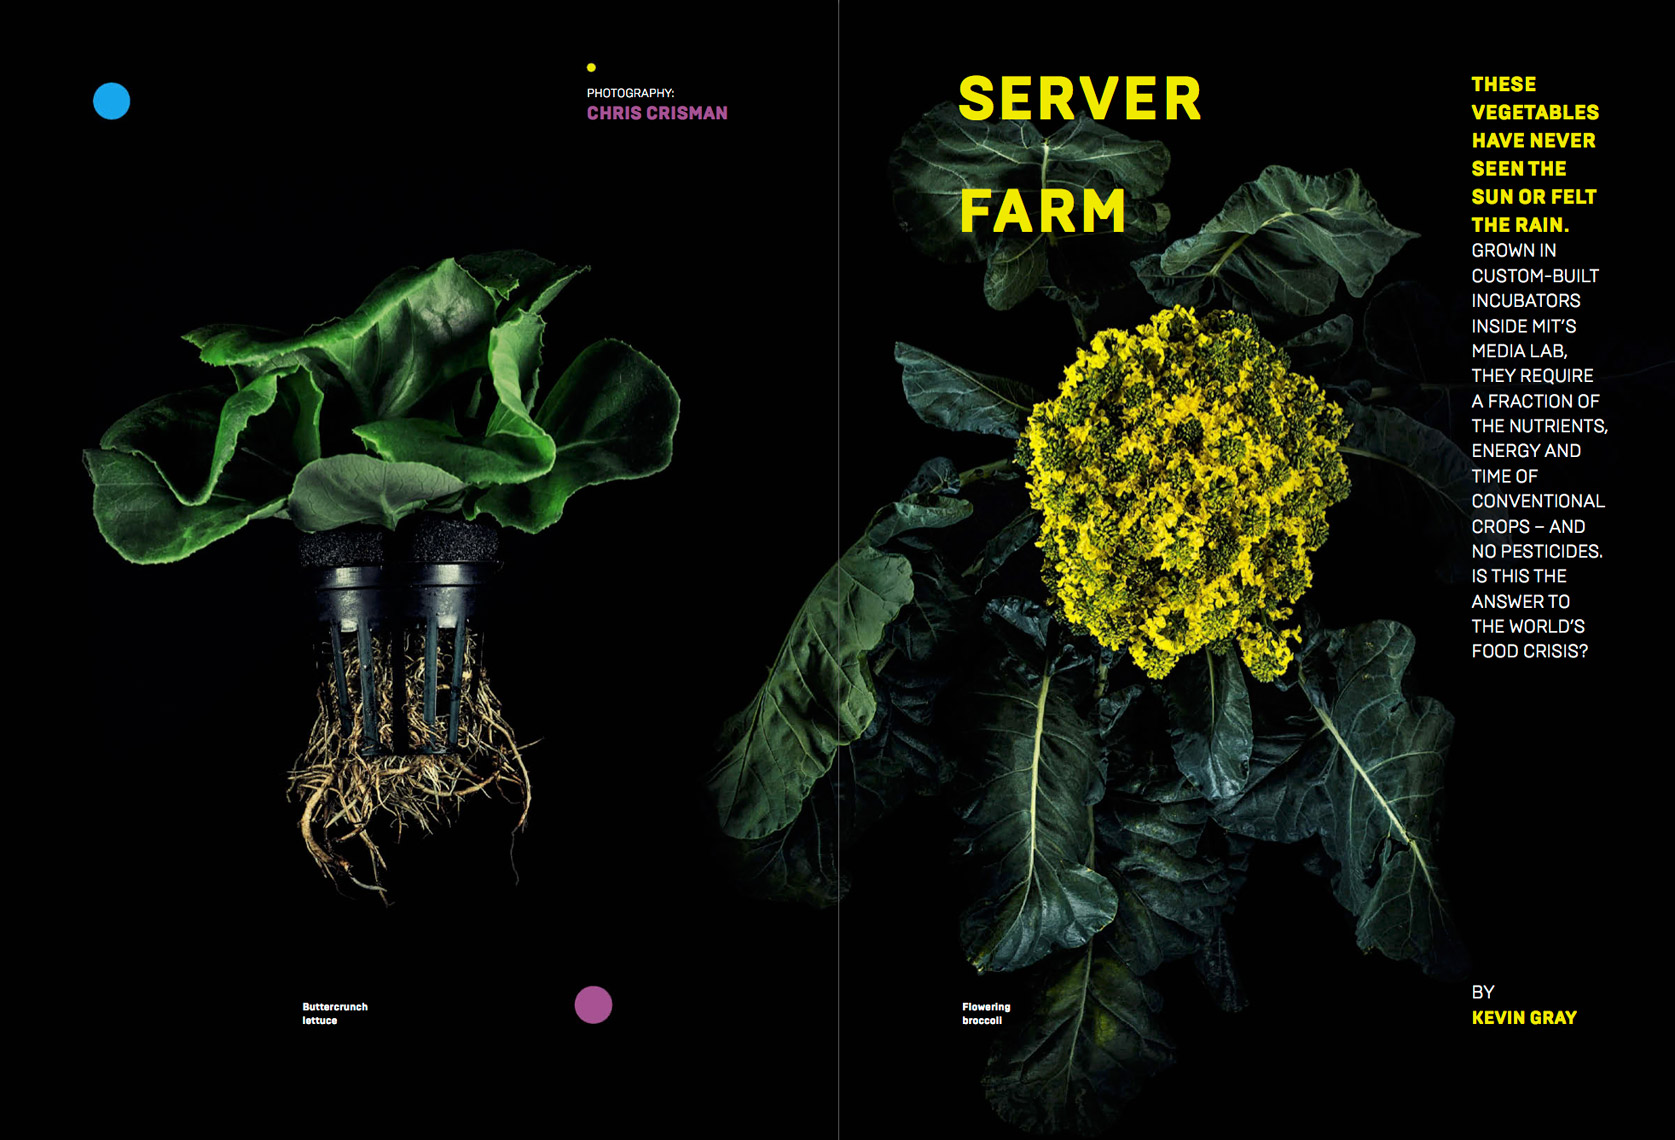 WIRED UK - OCTOBER 2014 - CITY FARM Feature - Spread 1 - photographer Chris Crisman